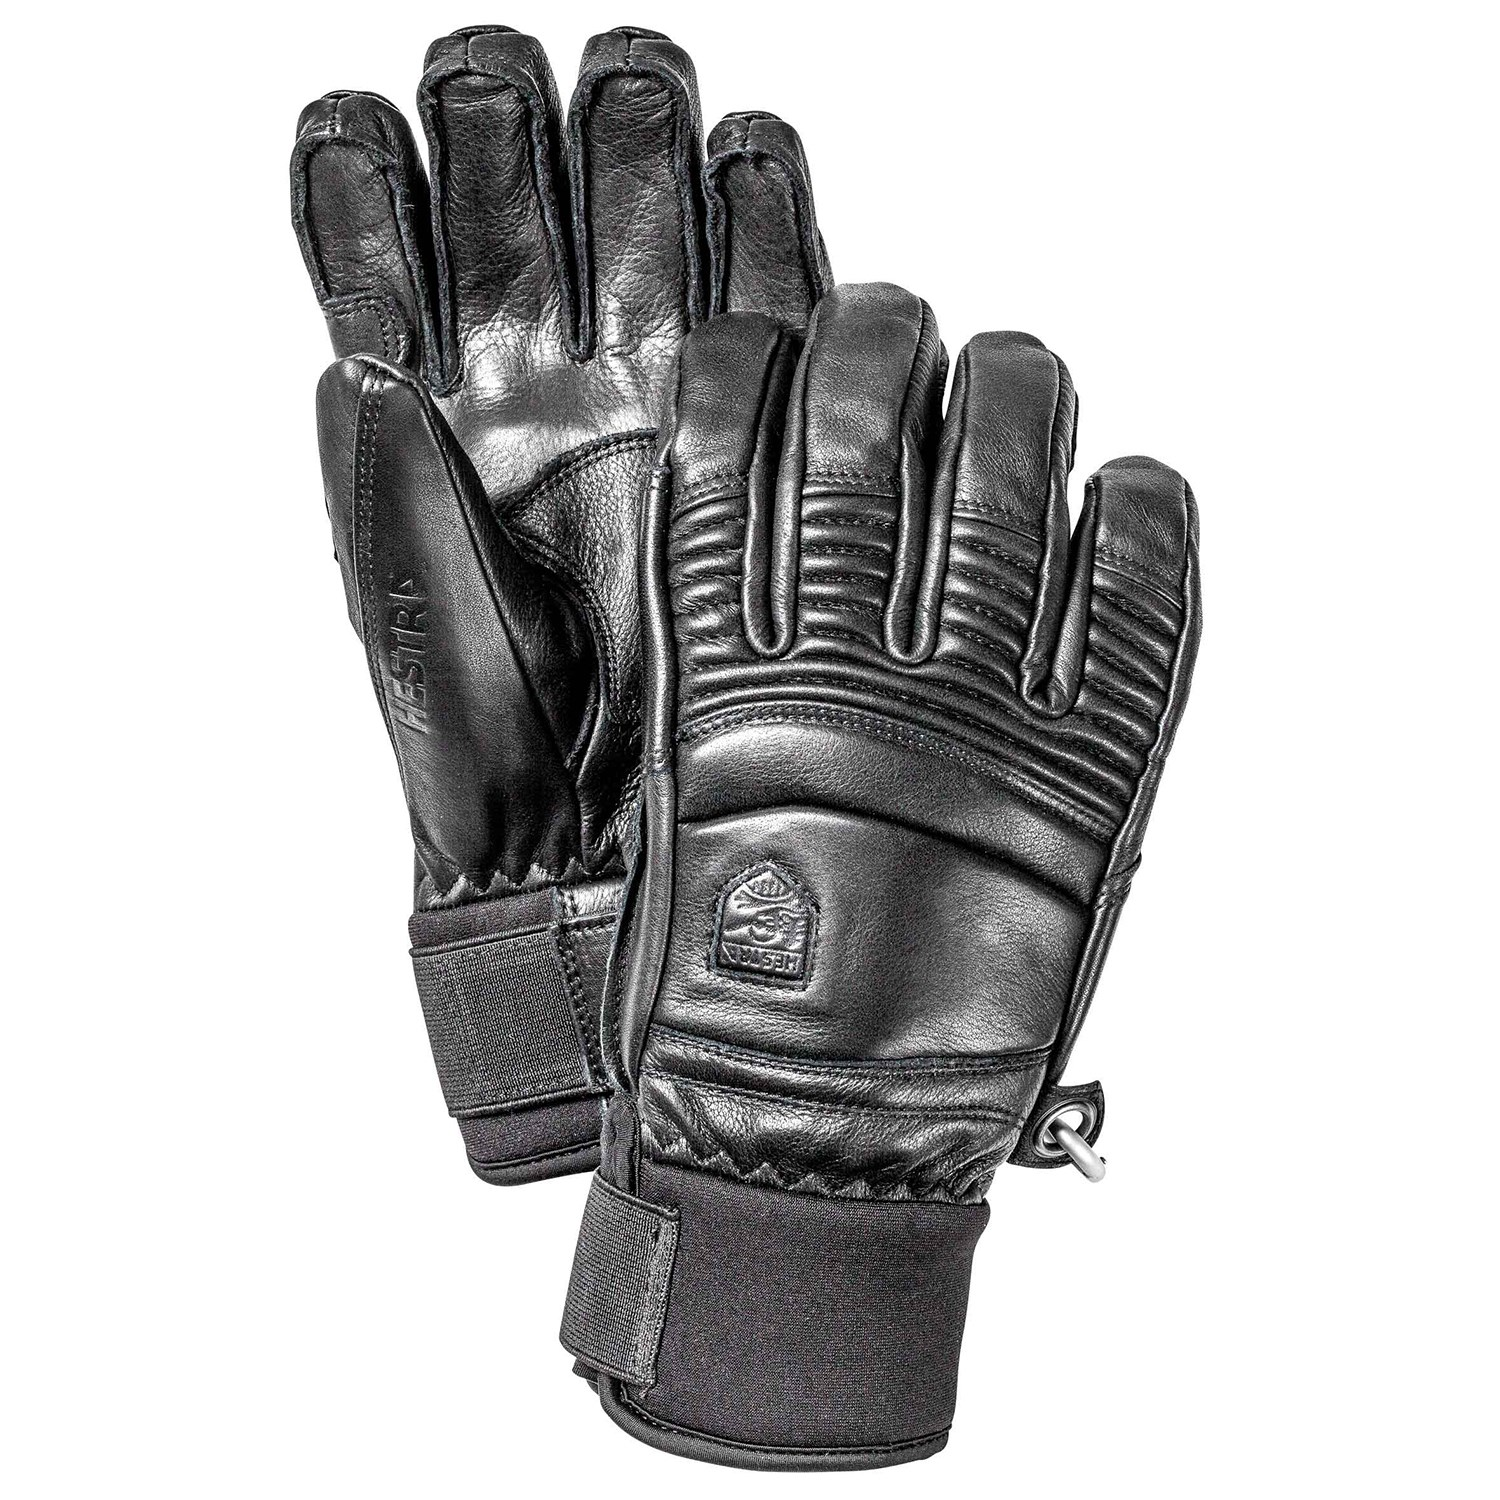 Hestra mens gloves - Hestra Mens Gloves 3